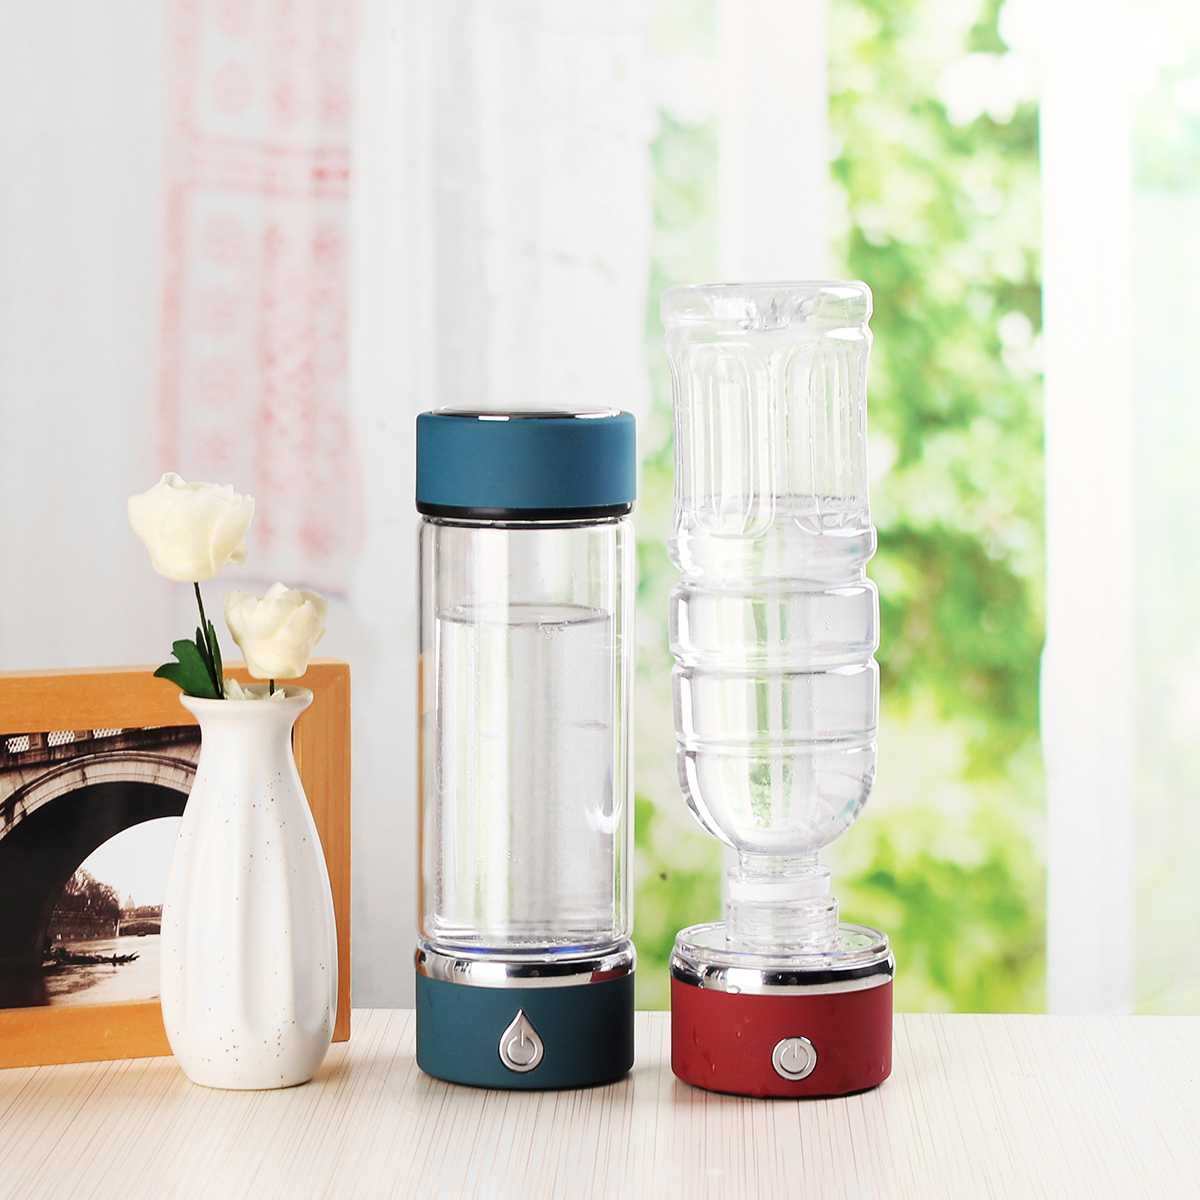 420ml For -Rich Water Cup Ionizer Maker/Generator Two Modes Super Antioxidants ORP For Bottle Healthy Cup